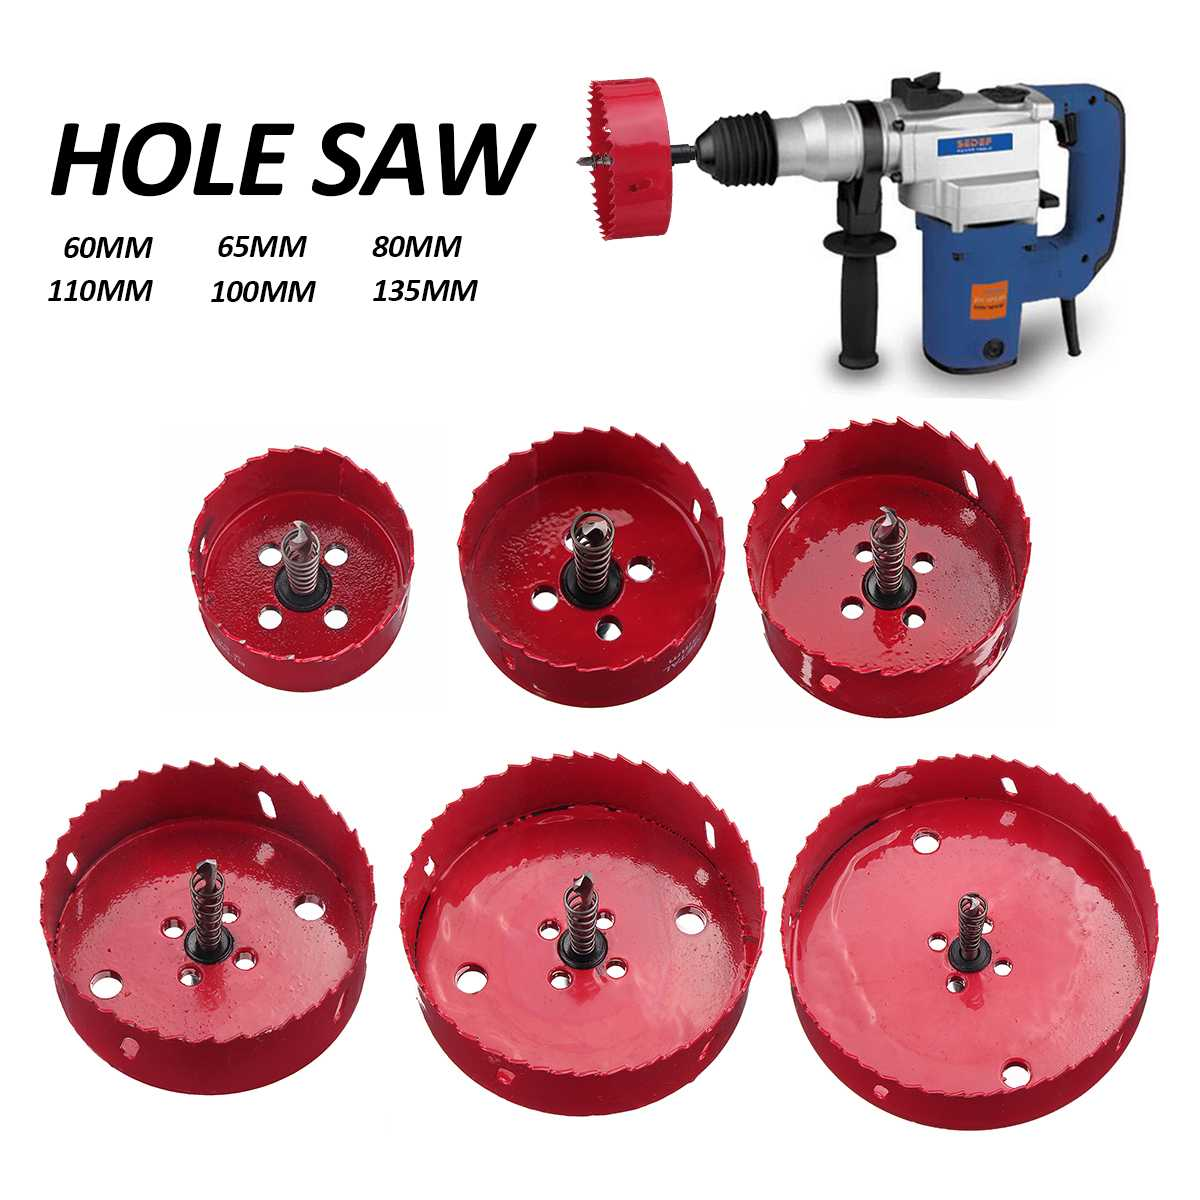 60-135mm M42 Metal Opener Wood Hole Saw Cutter Bit Holesaw Cutting Kit Drill Bit Set For Woodworking Iron Pipe DIY Tool Bit